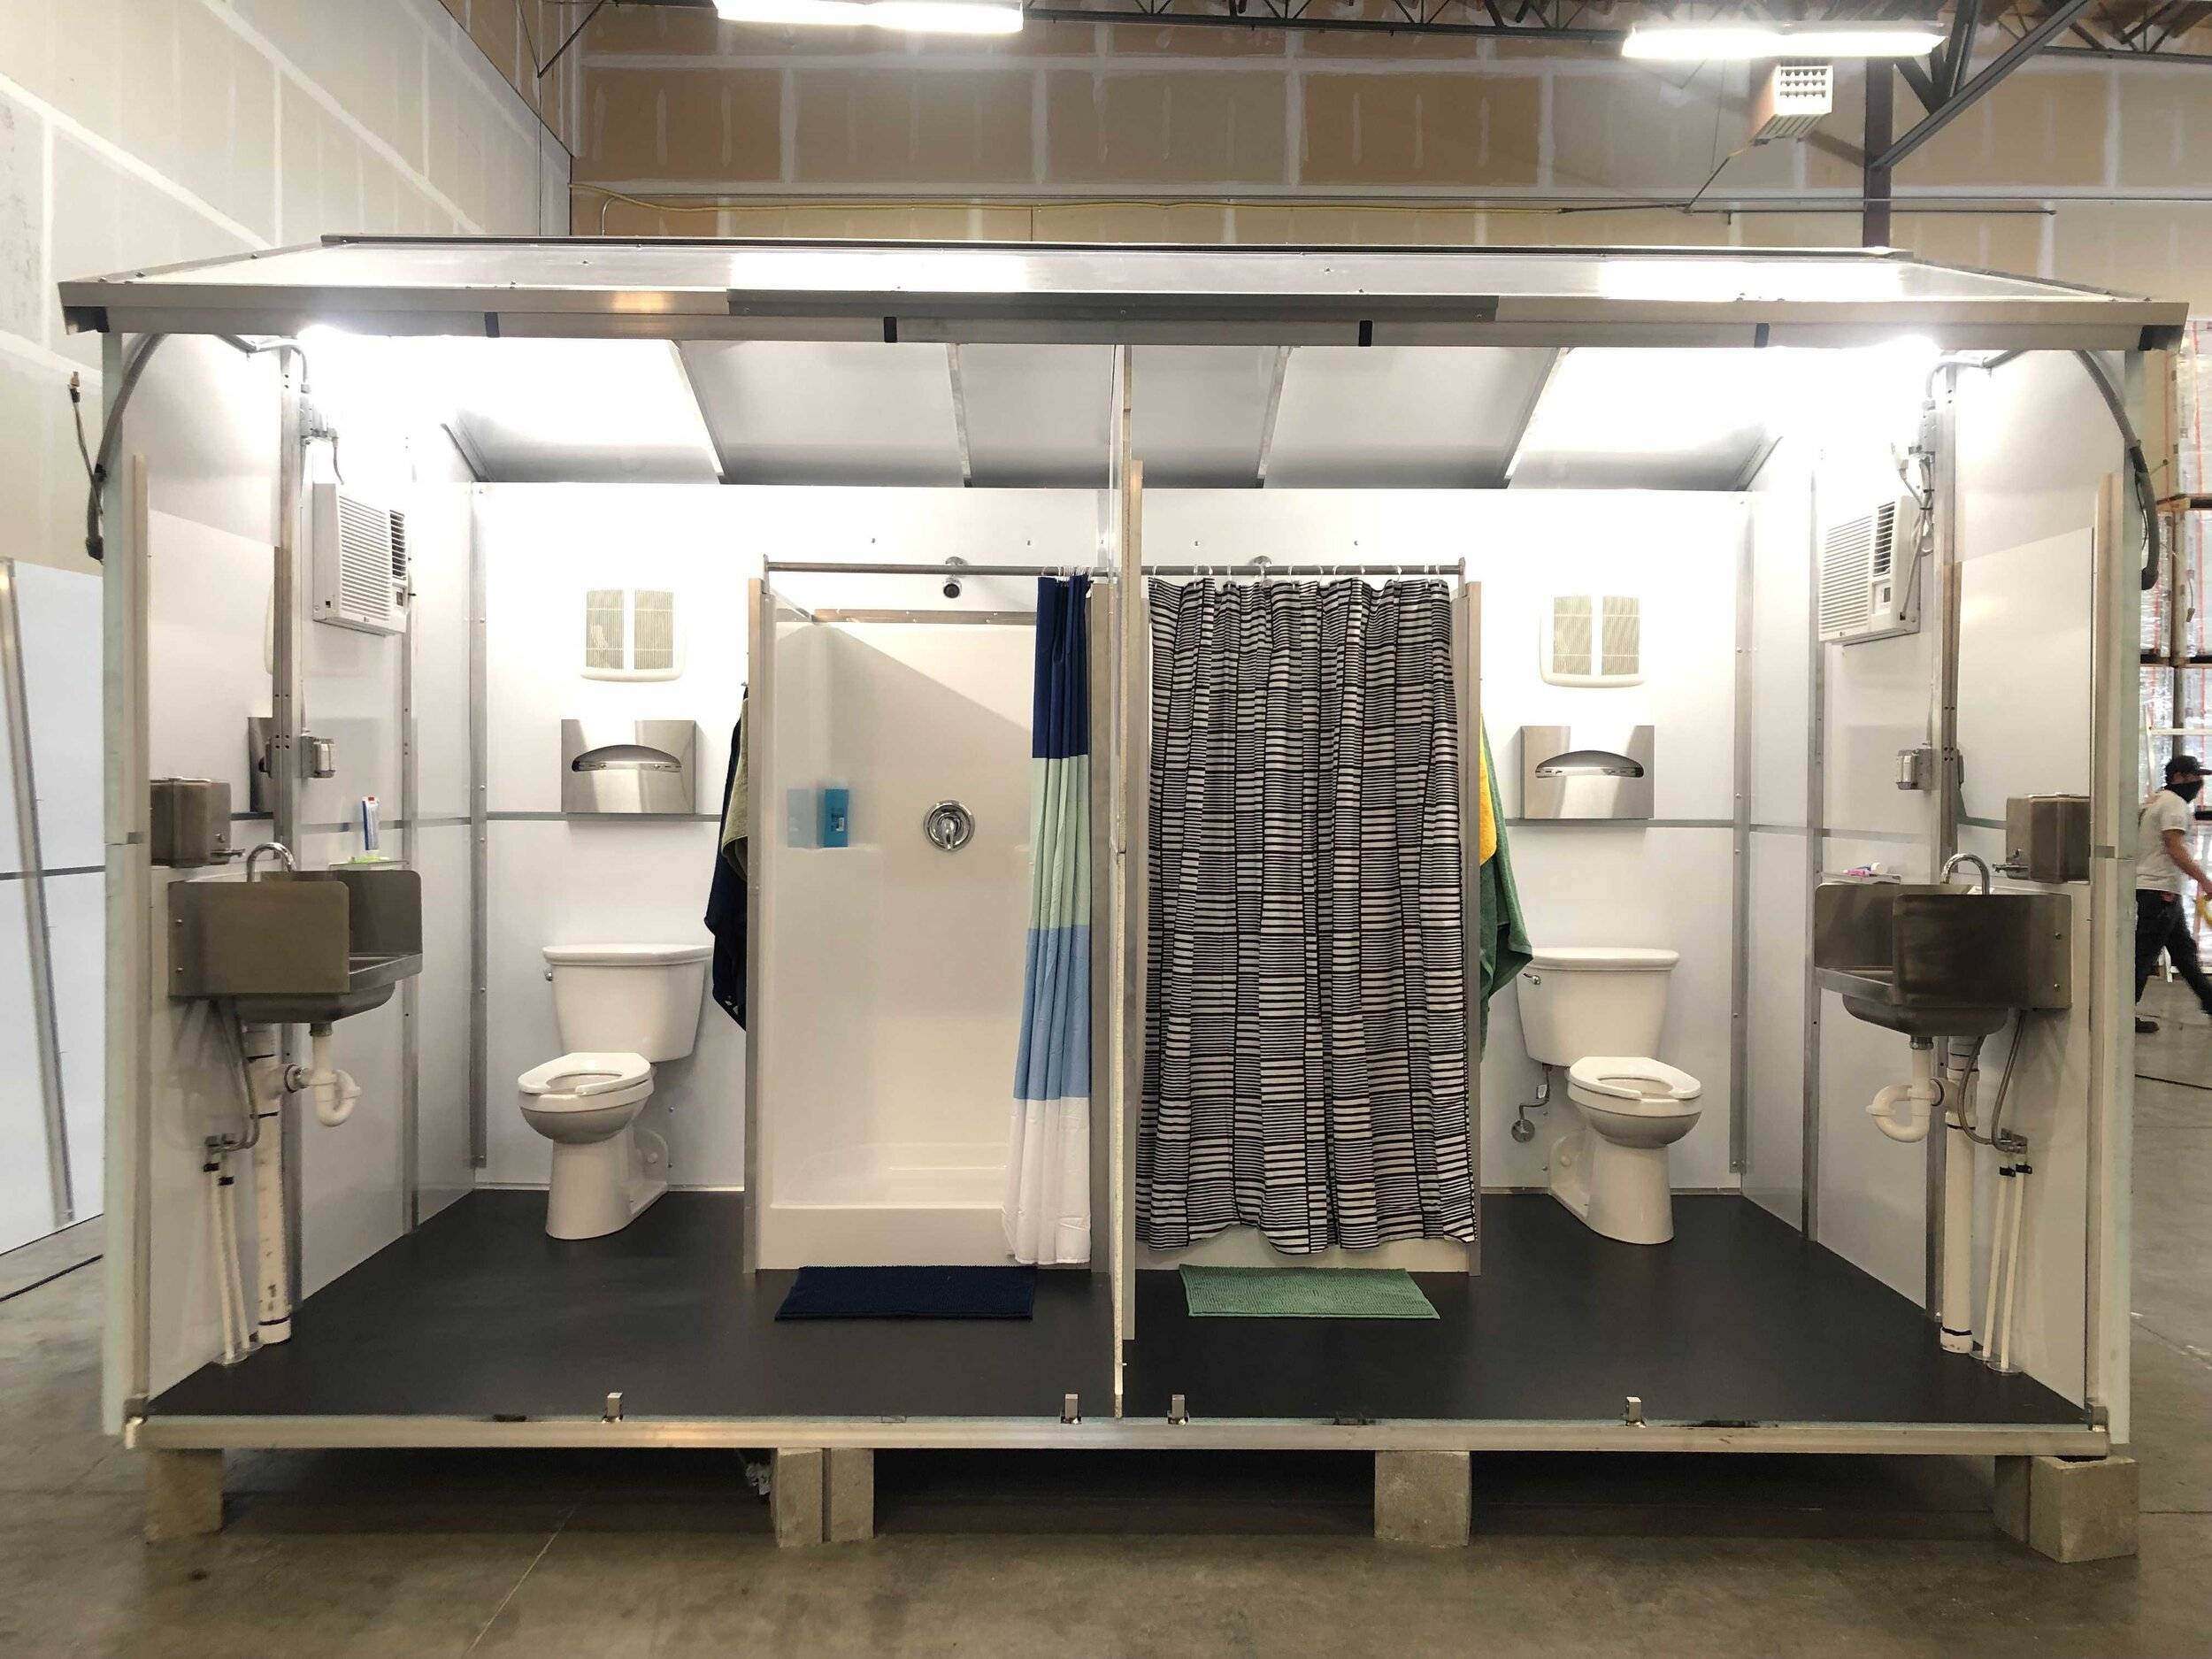 One of five Pallet bathroom configurations in the finalization process at our research and development factory.